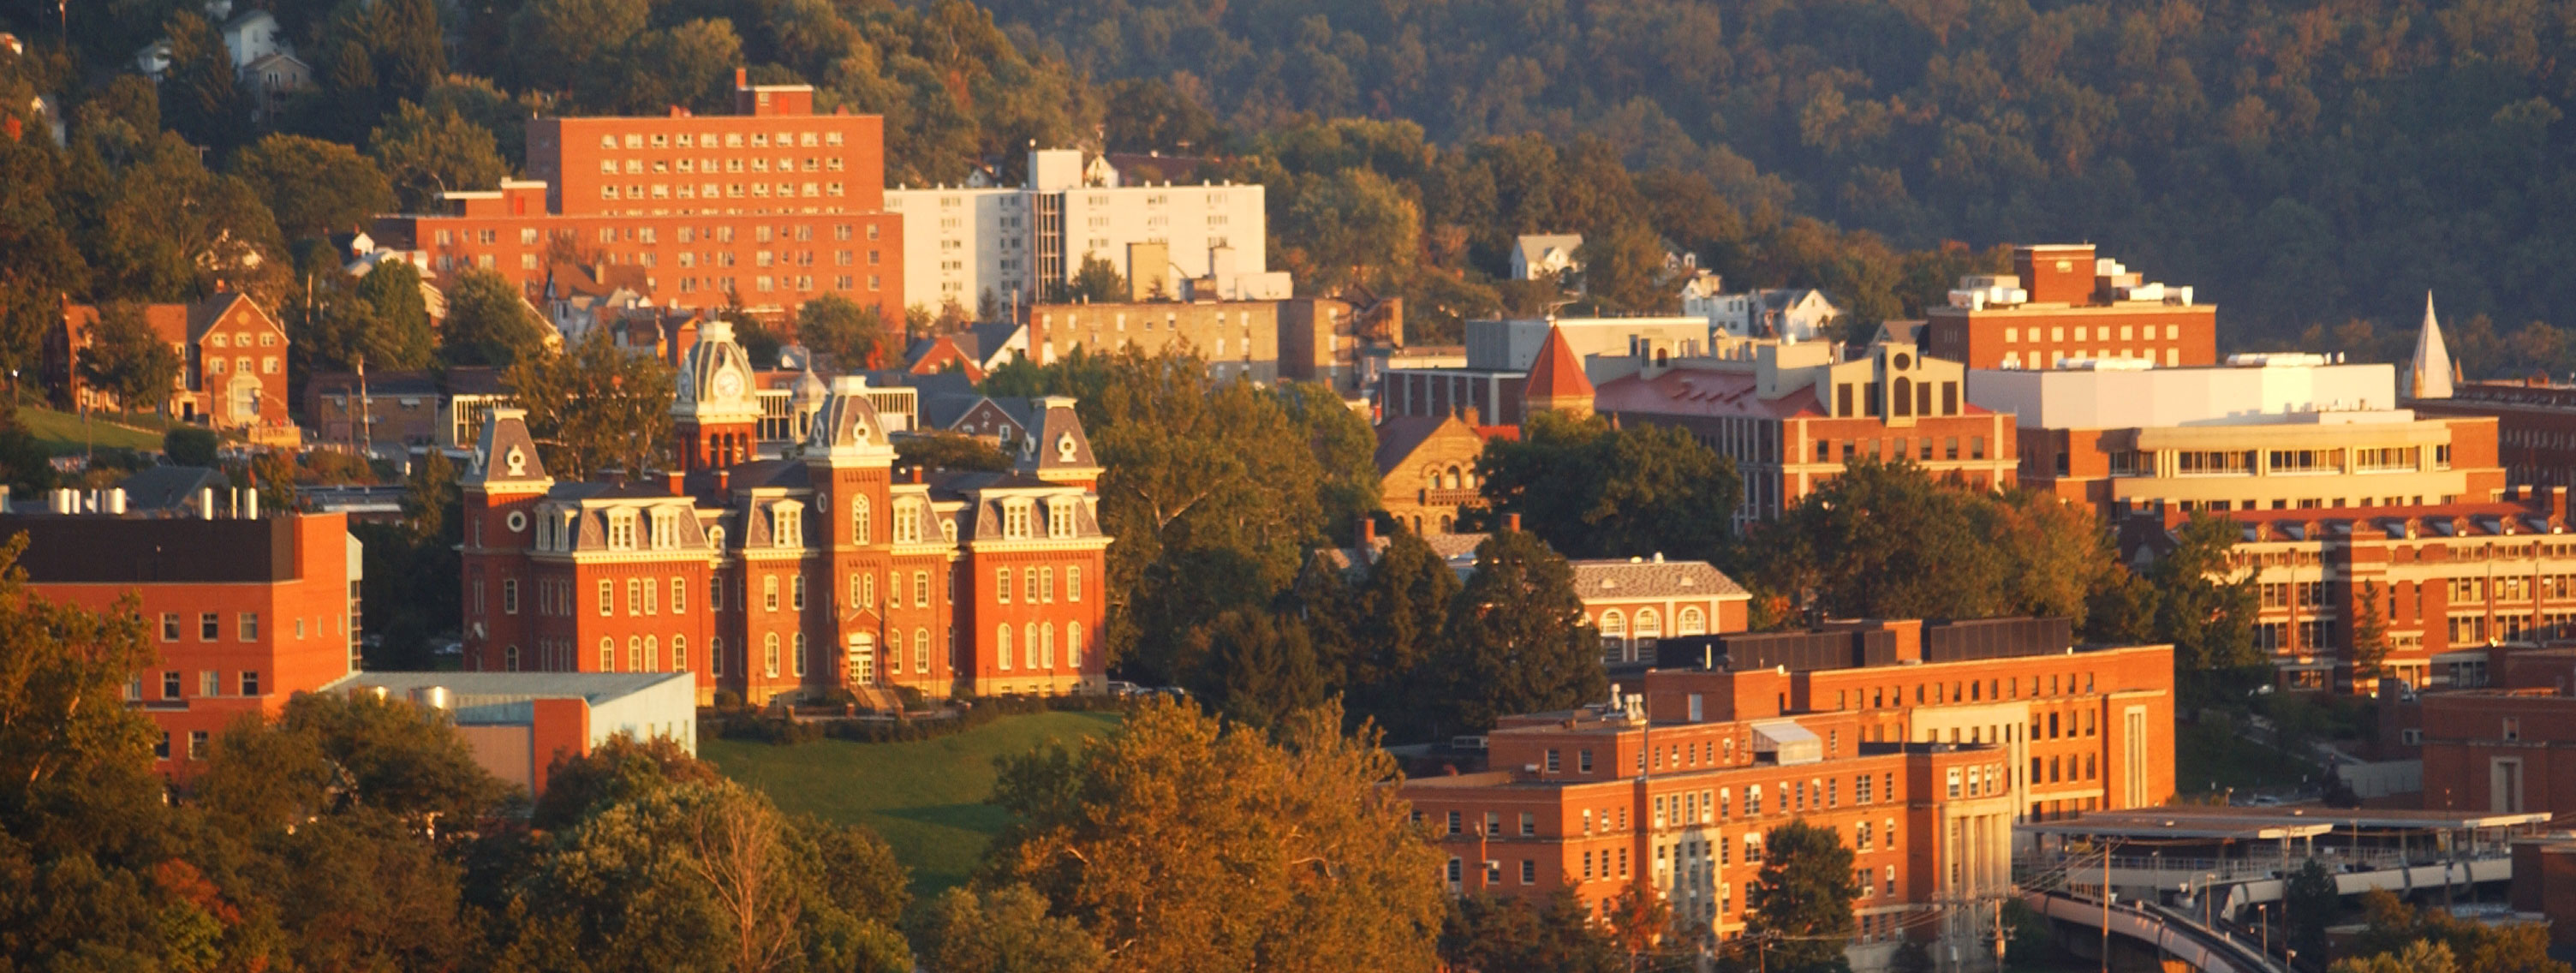 WV MetroNews – 3 fraternity chapters at WVU suspended in ...